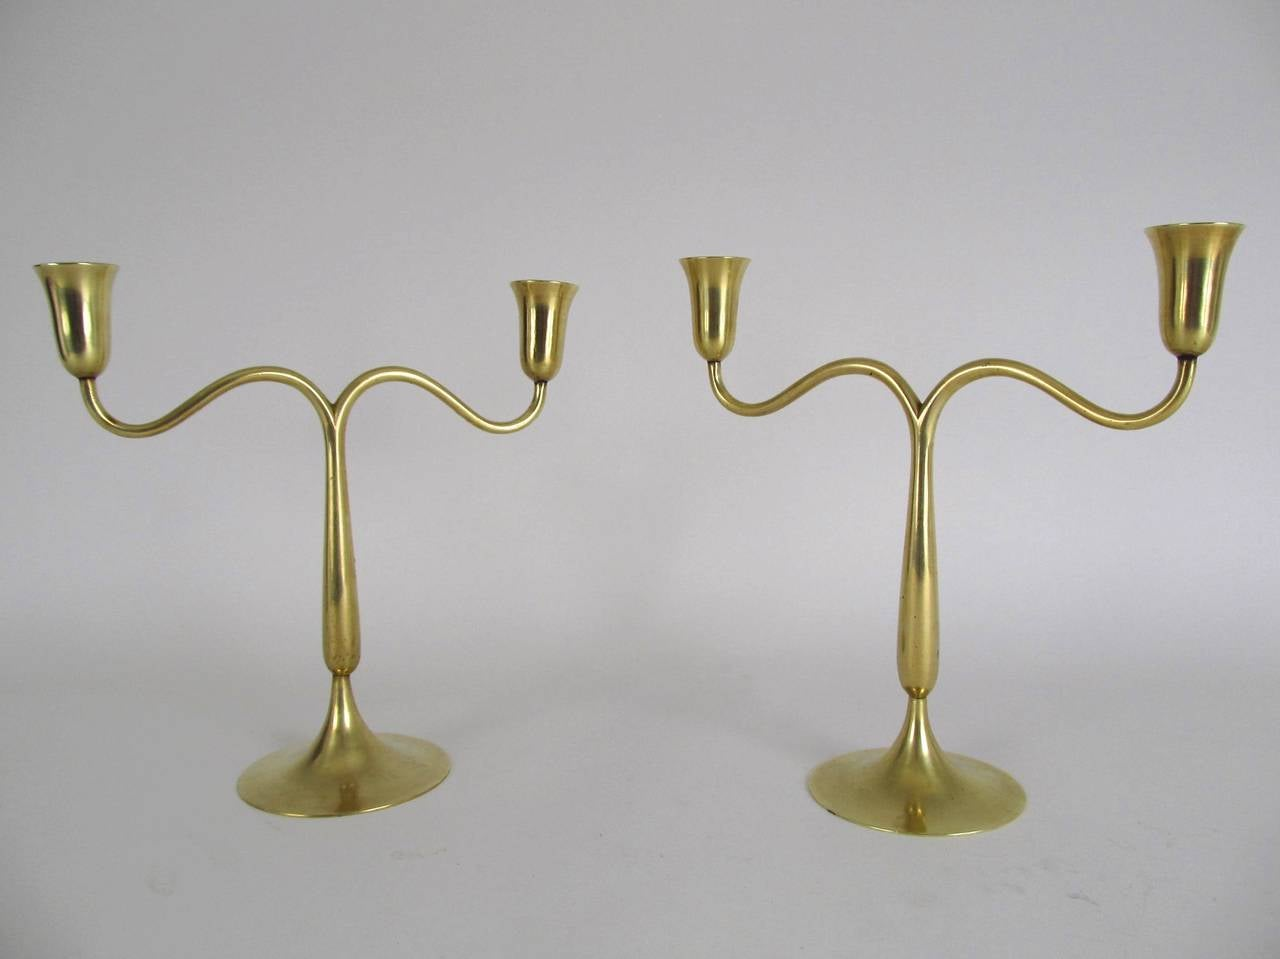 Pair of Signed Hagenauer Brass Candlesticks 2